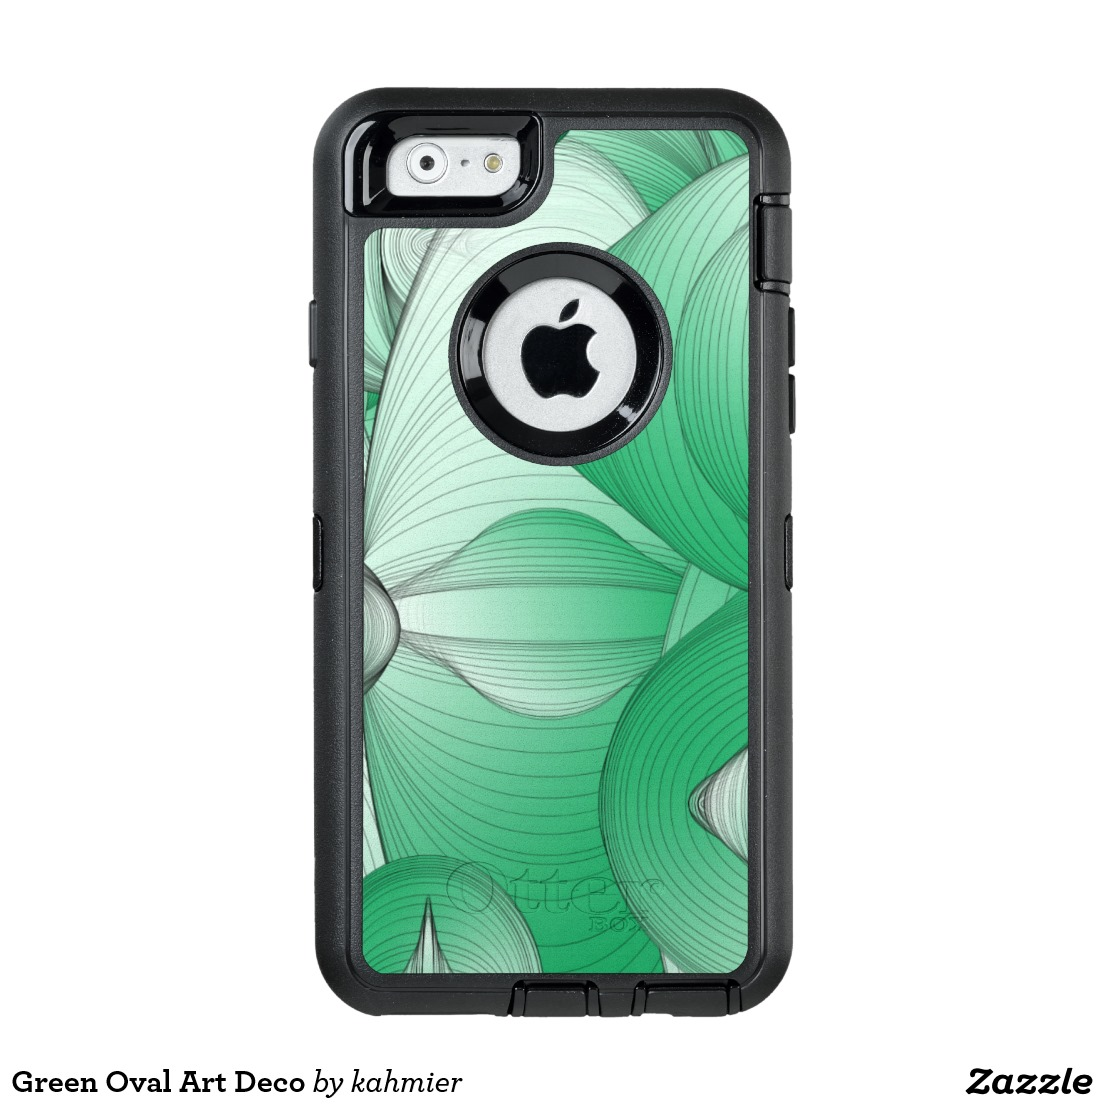 Green Oval Art Deco OtterBox Defender iPhone Case